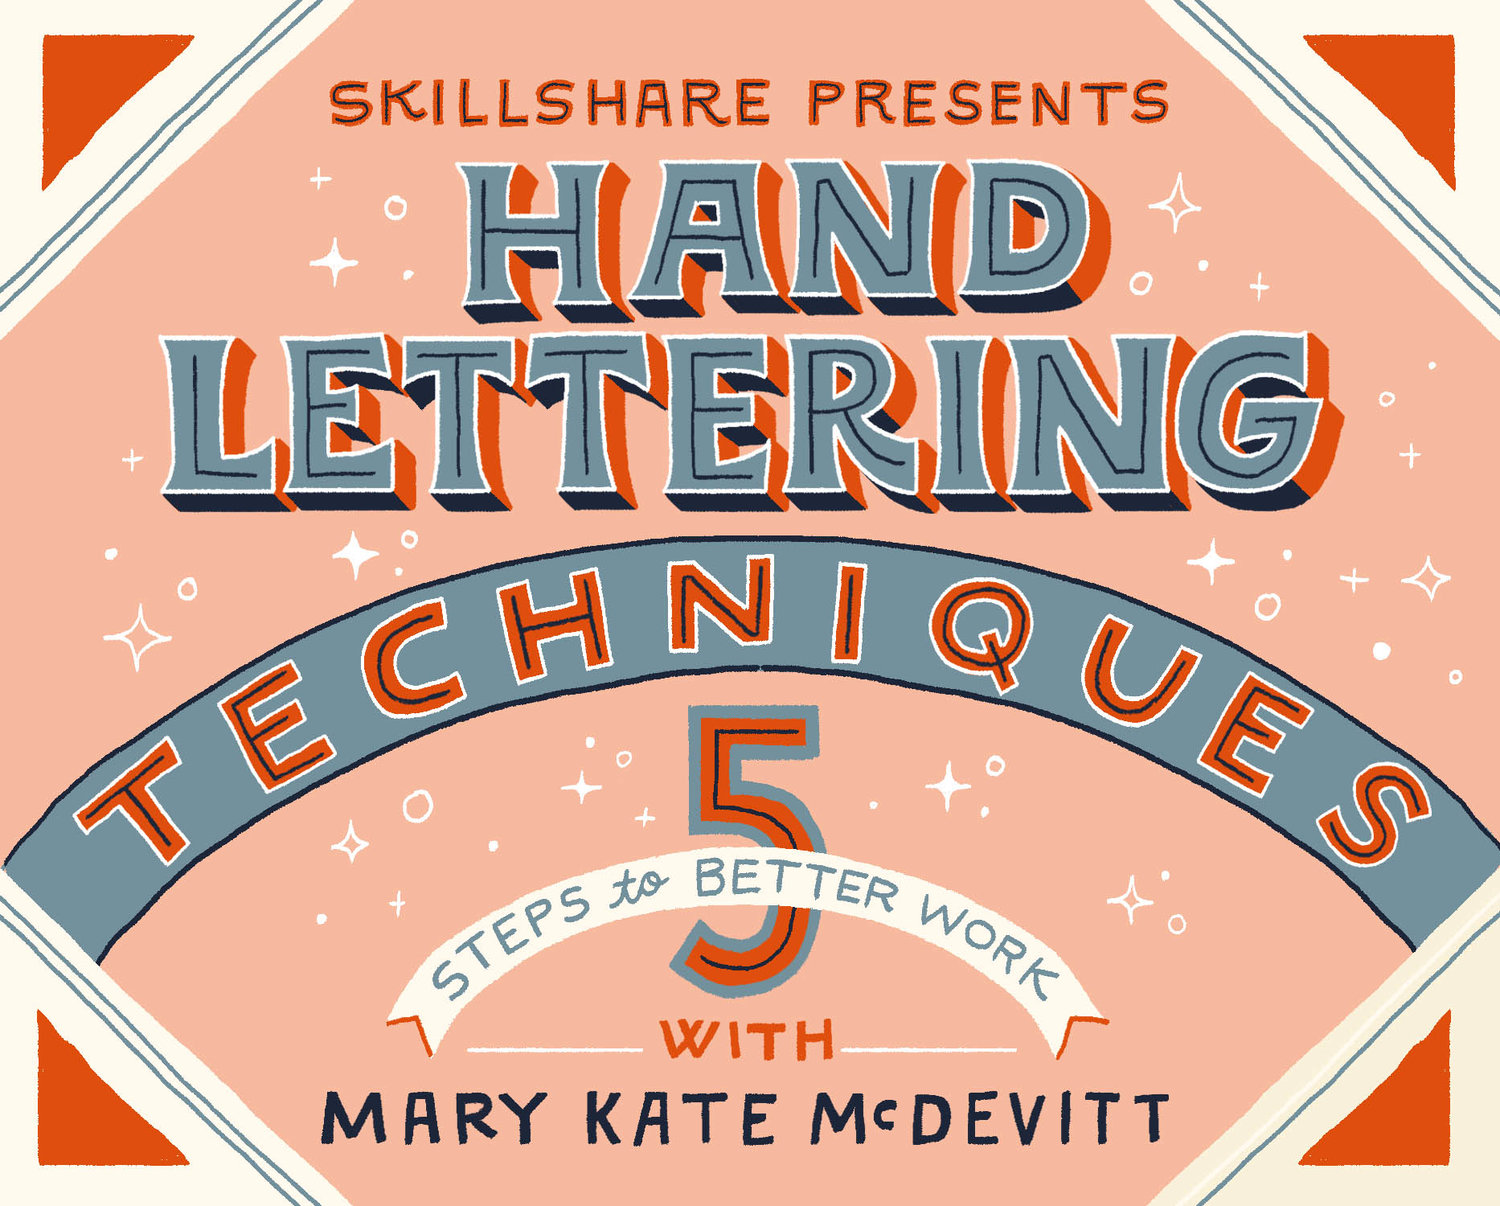 Skillshare with Mary Kate McDevitt